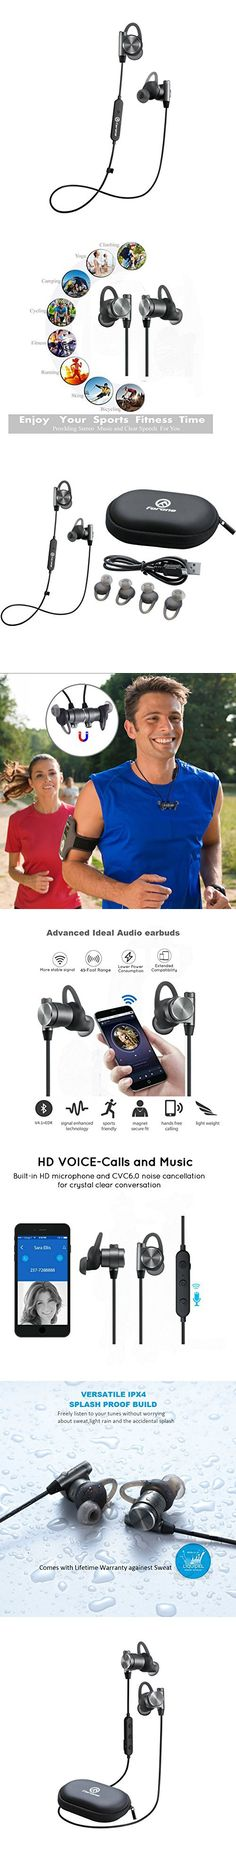 Wireless Bluetooth Earbuds   Forone Magnetic Headphones with Super Bass   IPX4 Waterproof Noise-Cancelling Headset with Mic   Fitness, Exercise, Running, Gym,Sports